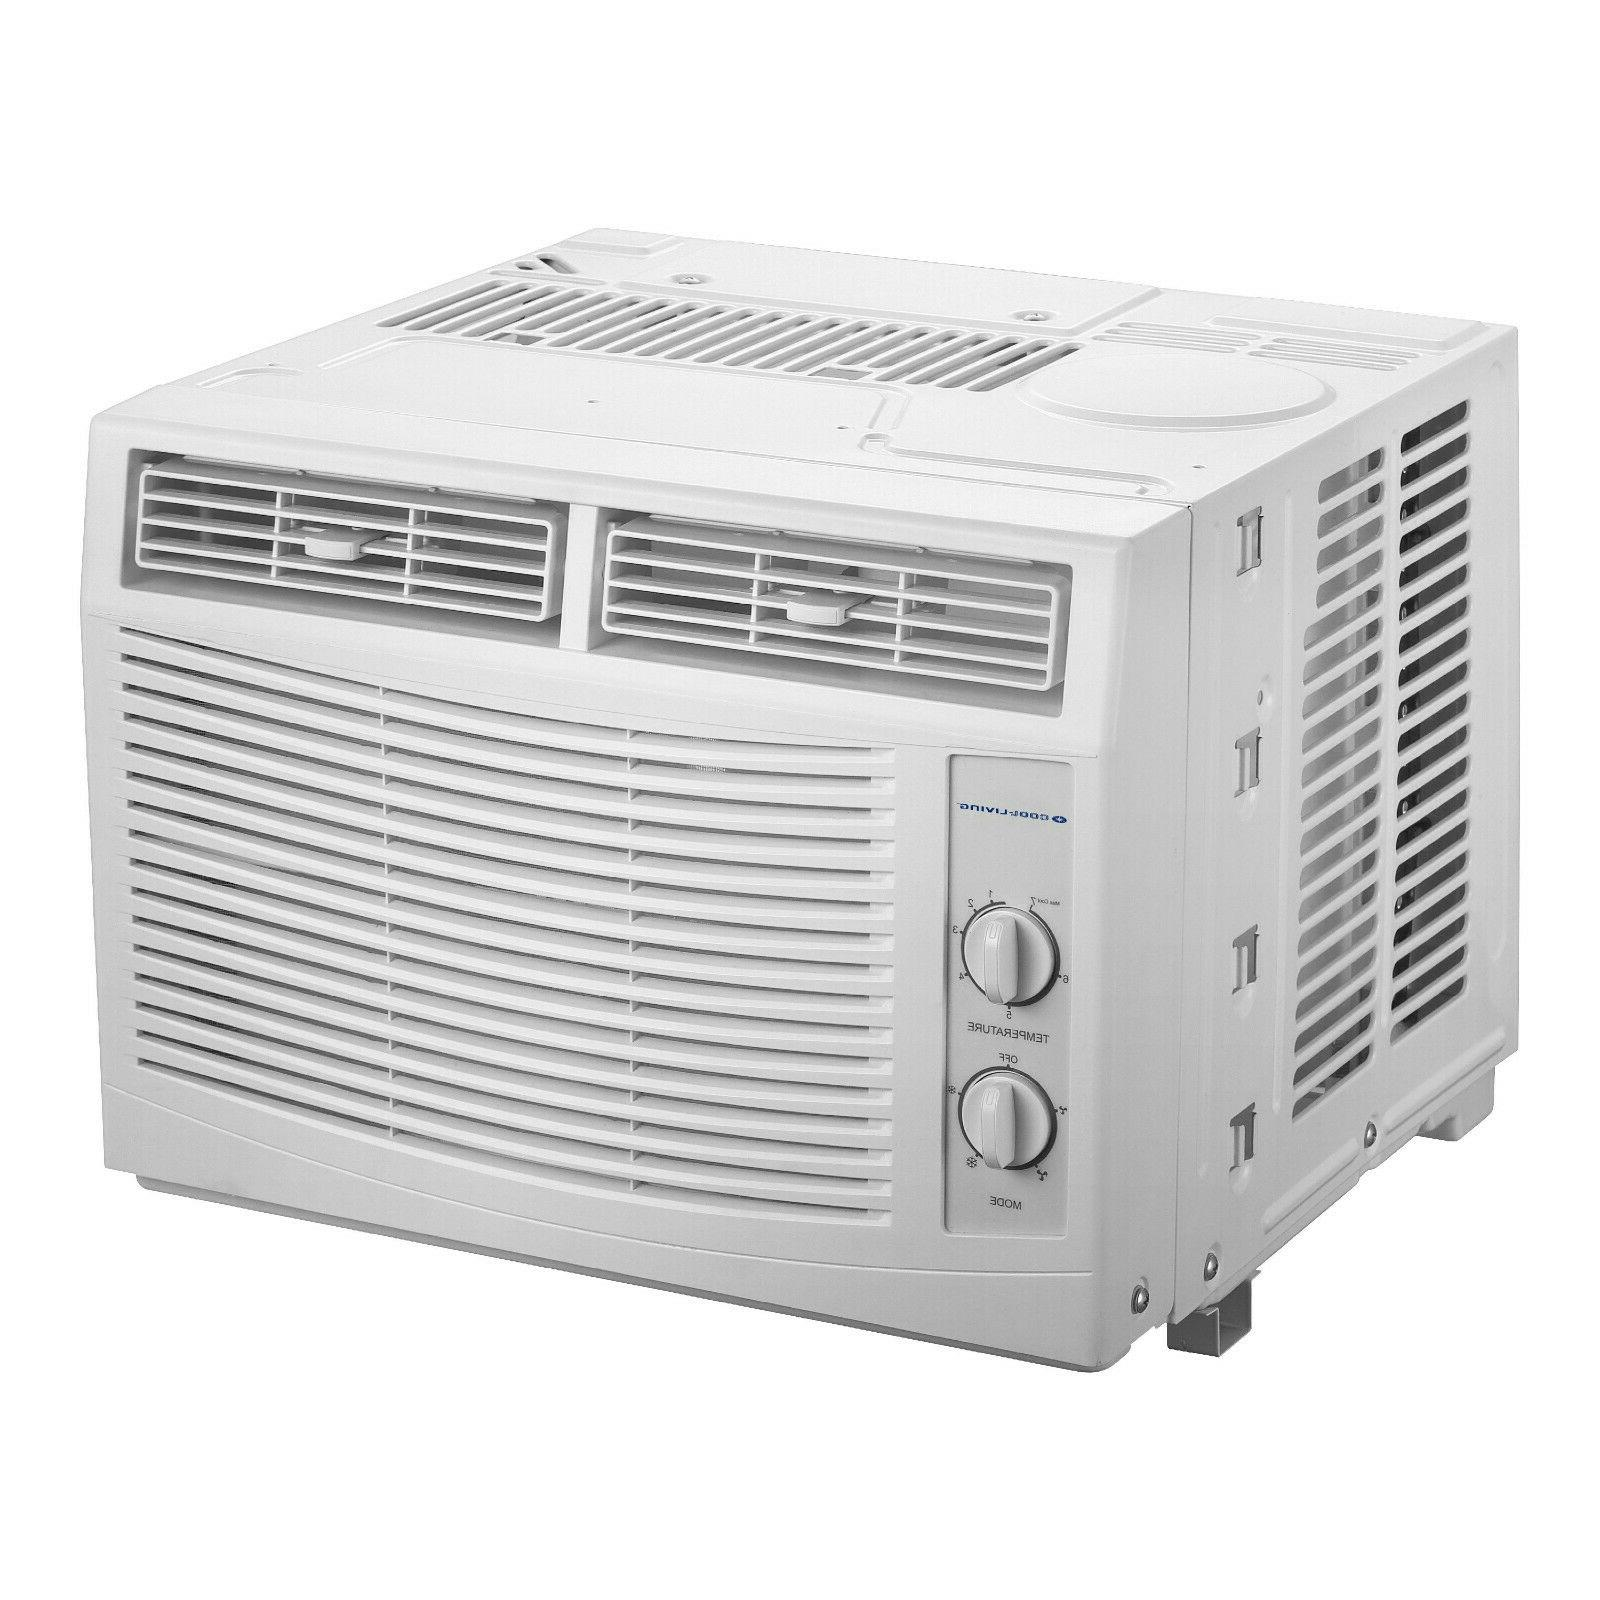 Bedroom Window AC Air Conditioner Compact Installation Kit